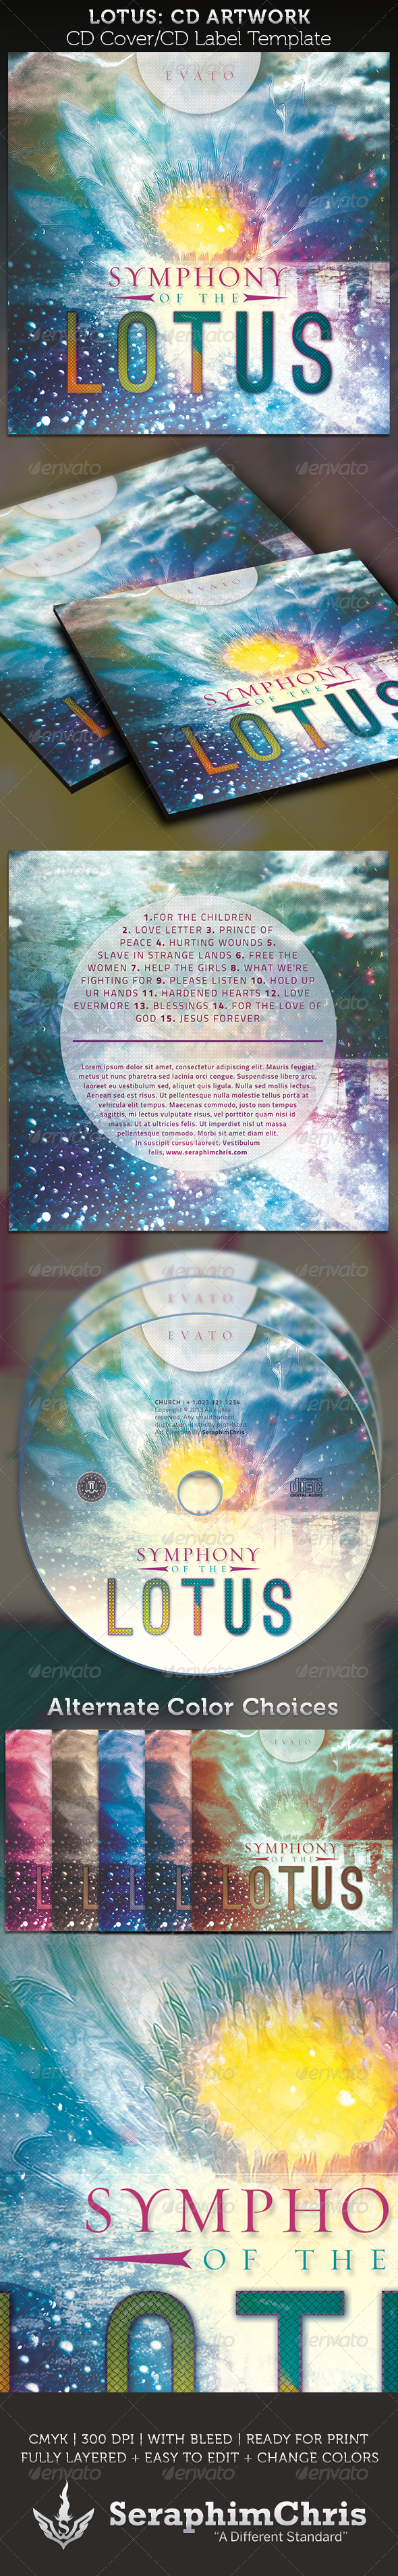 GraphicRiver Symphony of the Lotus CD Cover Artwork Template 3898954